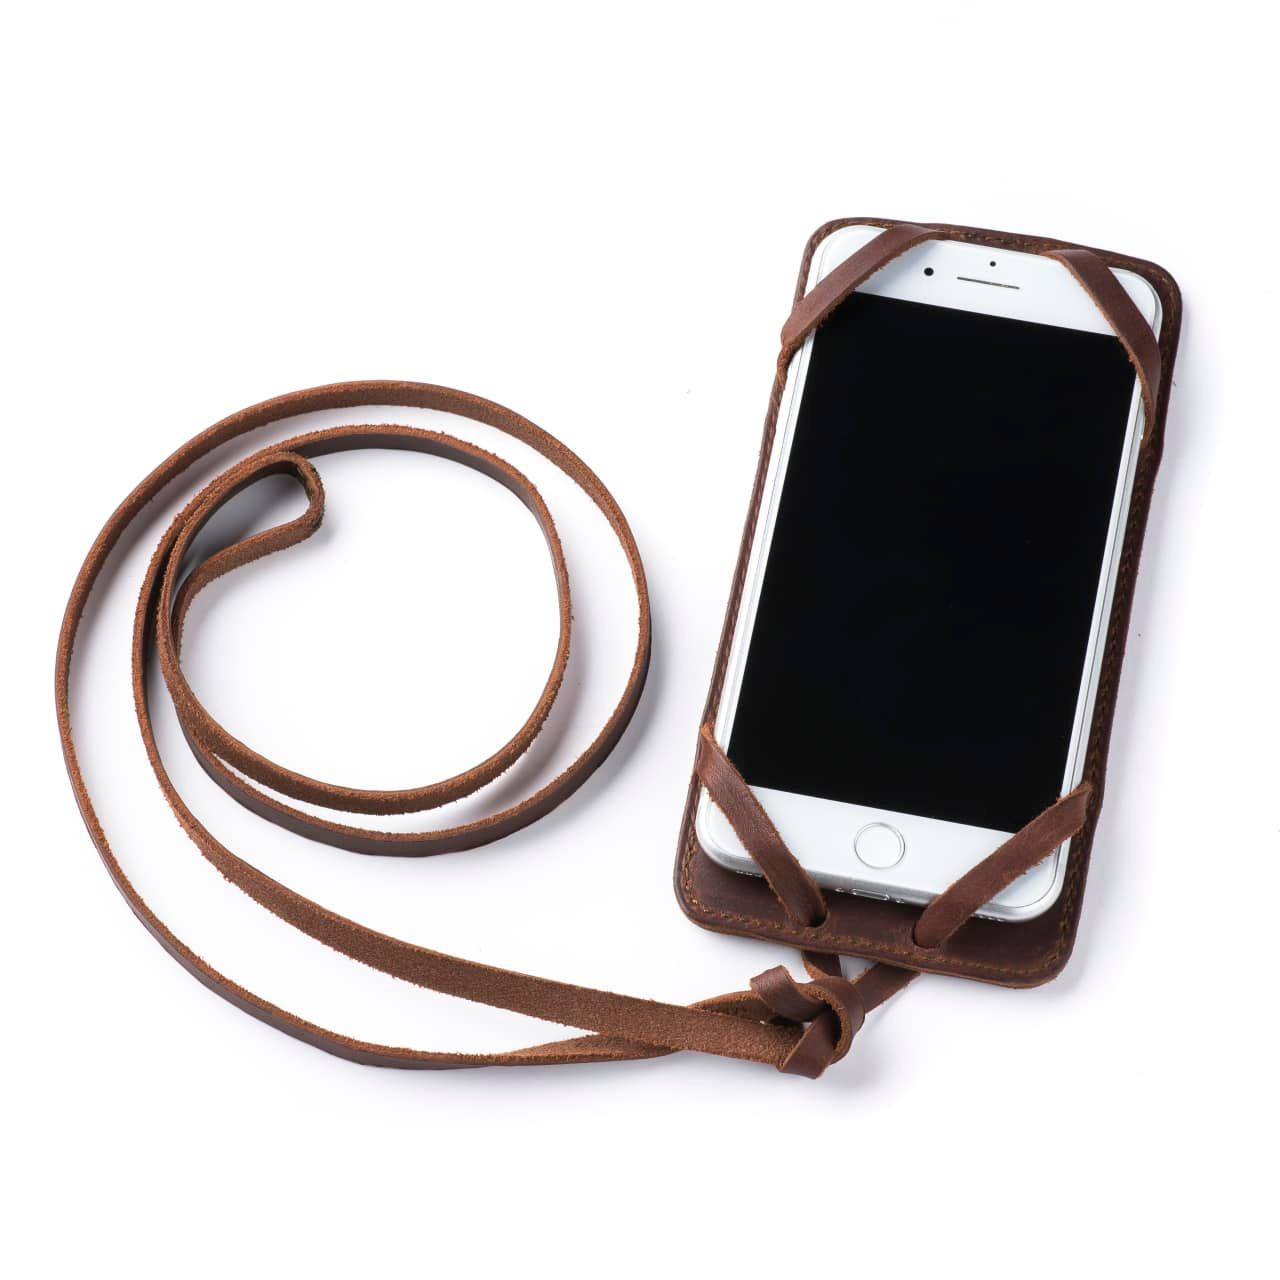 Leather iPhone 8+ Case in Color Chestnut with the Lanyard attached front angle with phone in the case